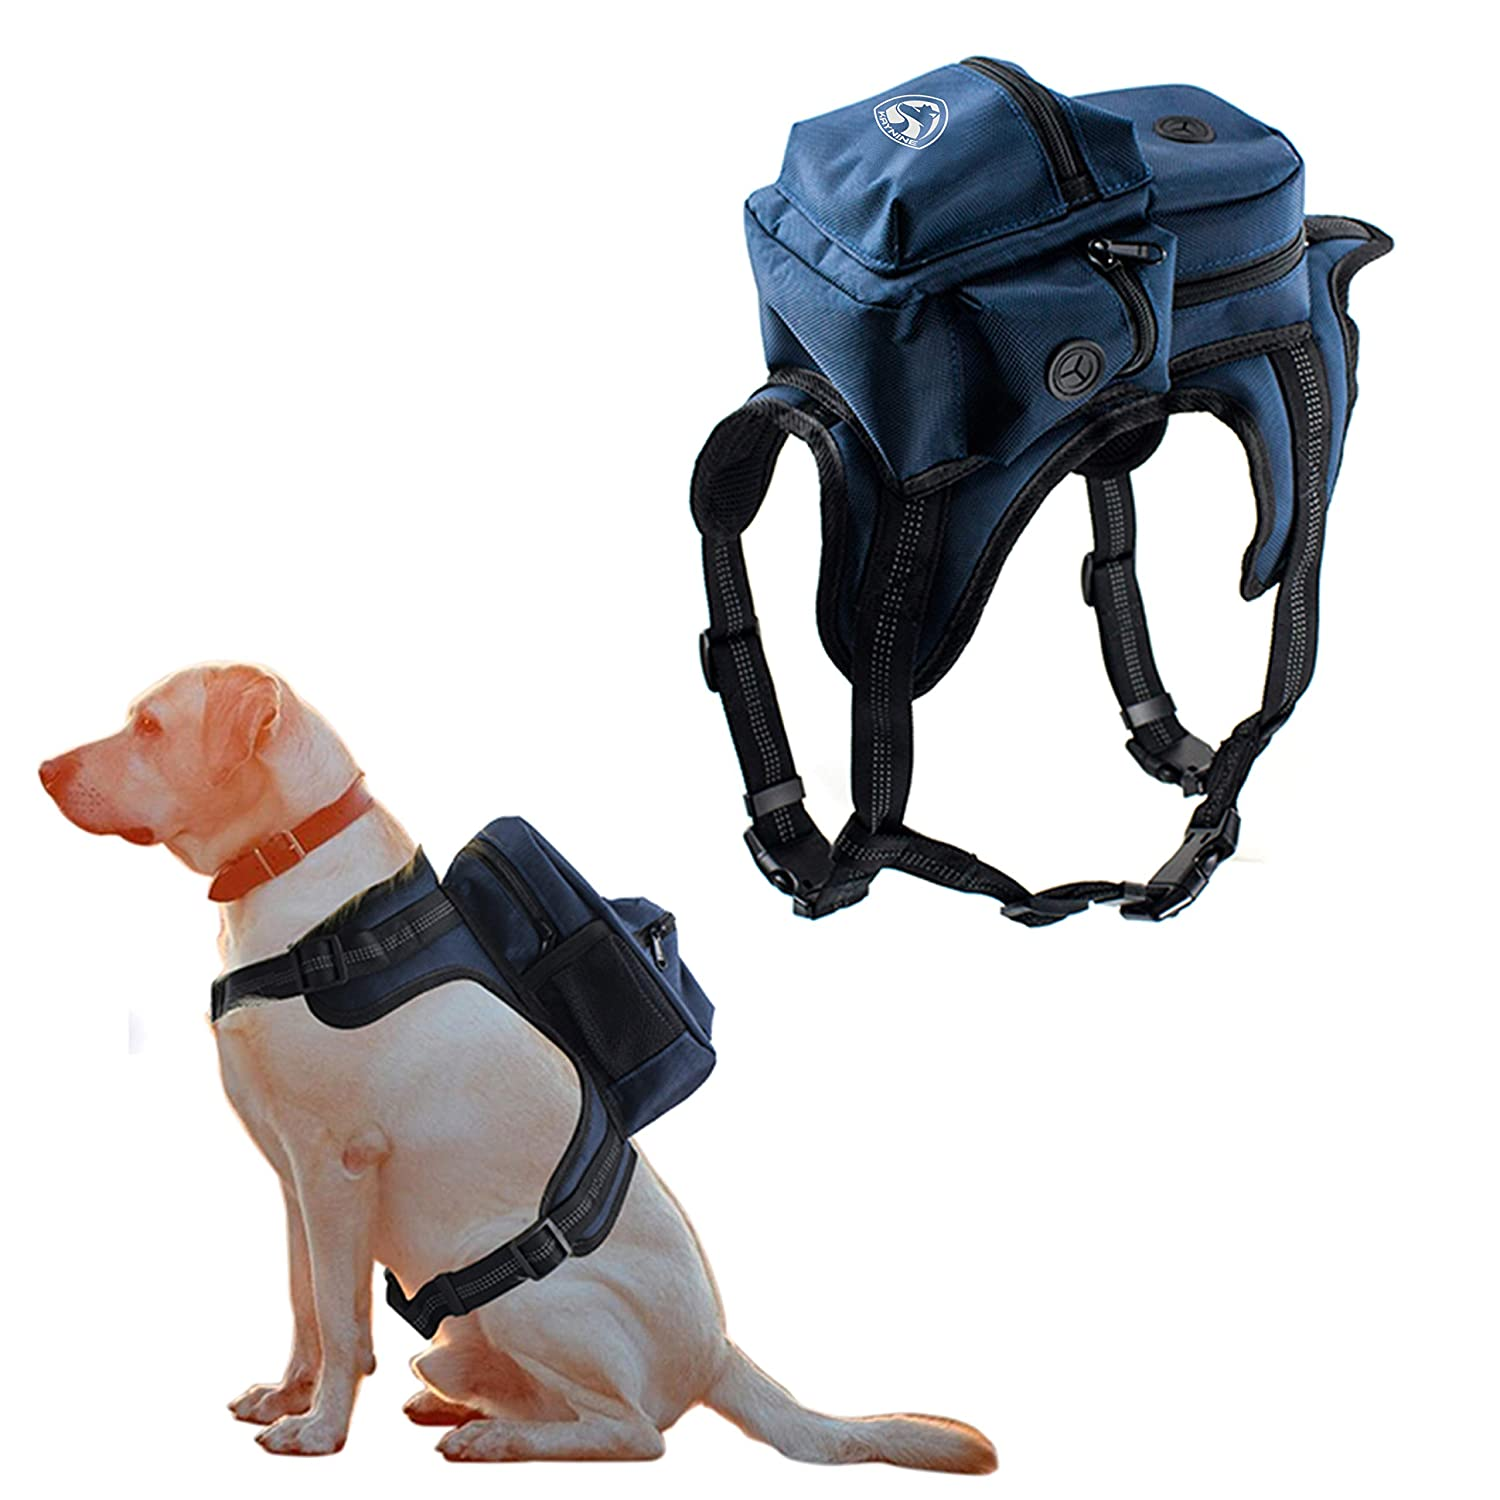 Kaynine Dog Backpack for Travel Camping Hiking Walking Training with Adjustable Straps Size Small Medium Large Black) Kaynine Pack